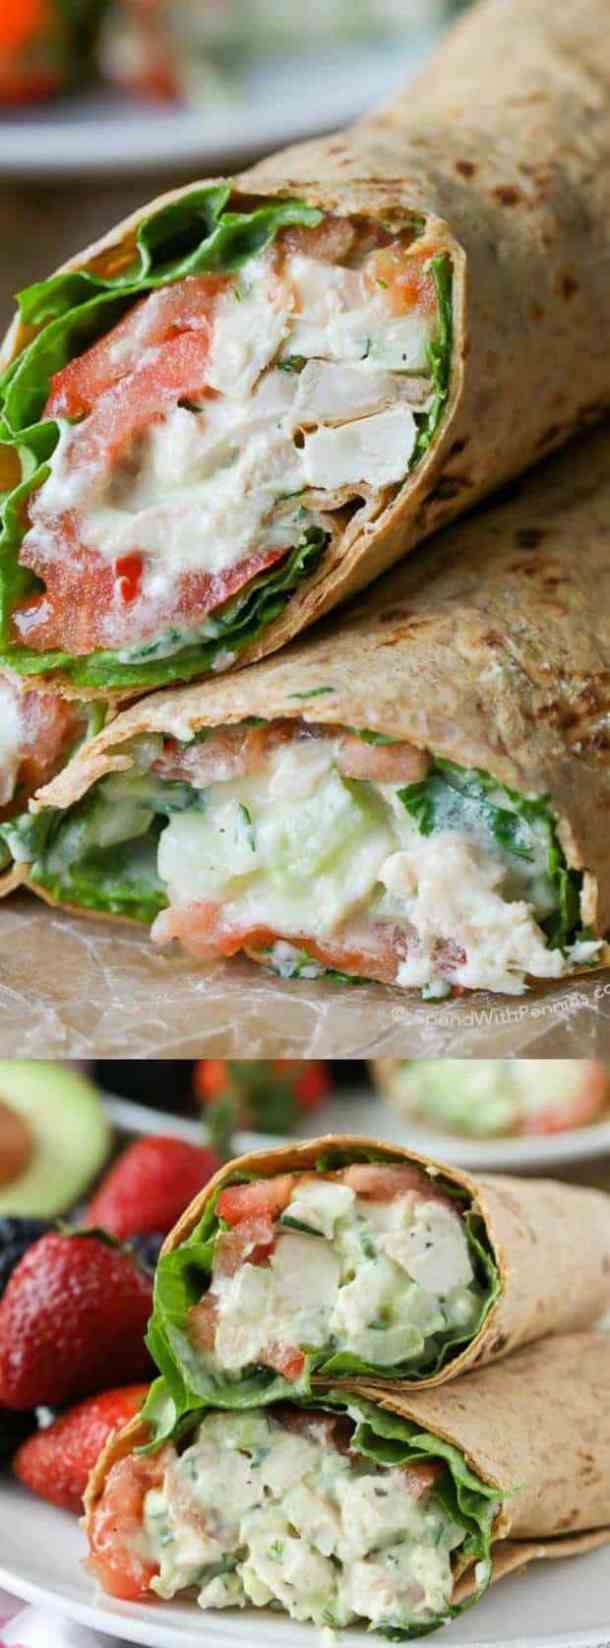 Avocado Ranch Chicken Salad Wrap